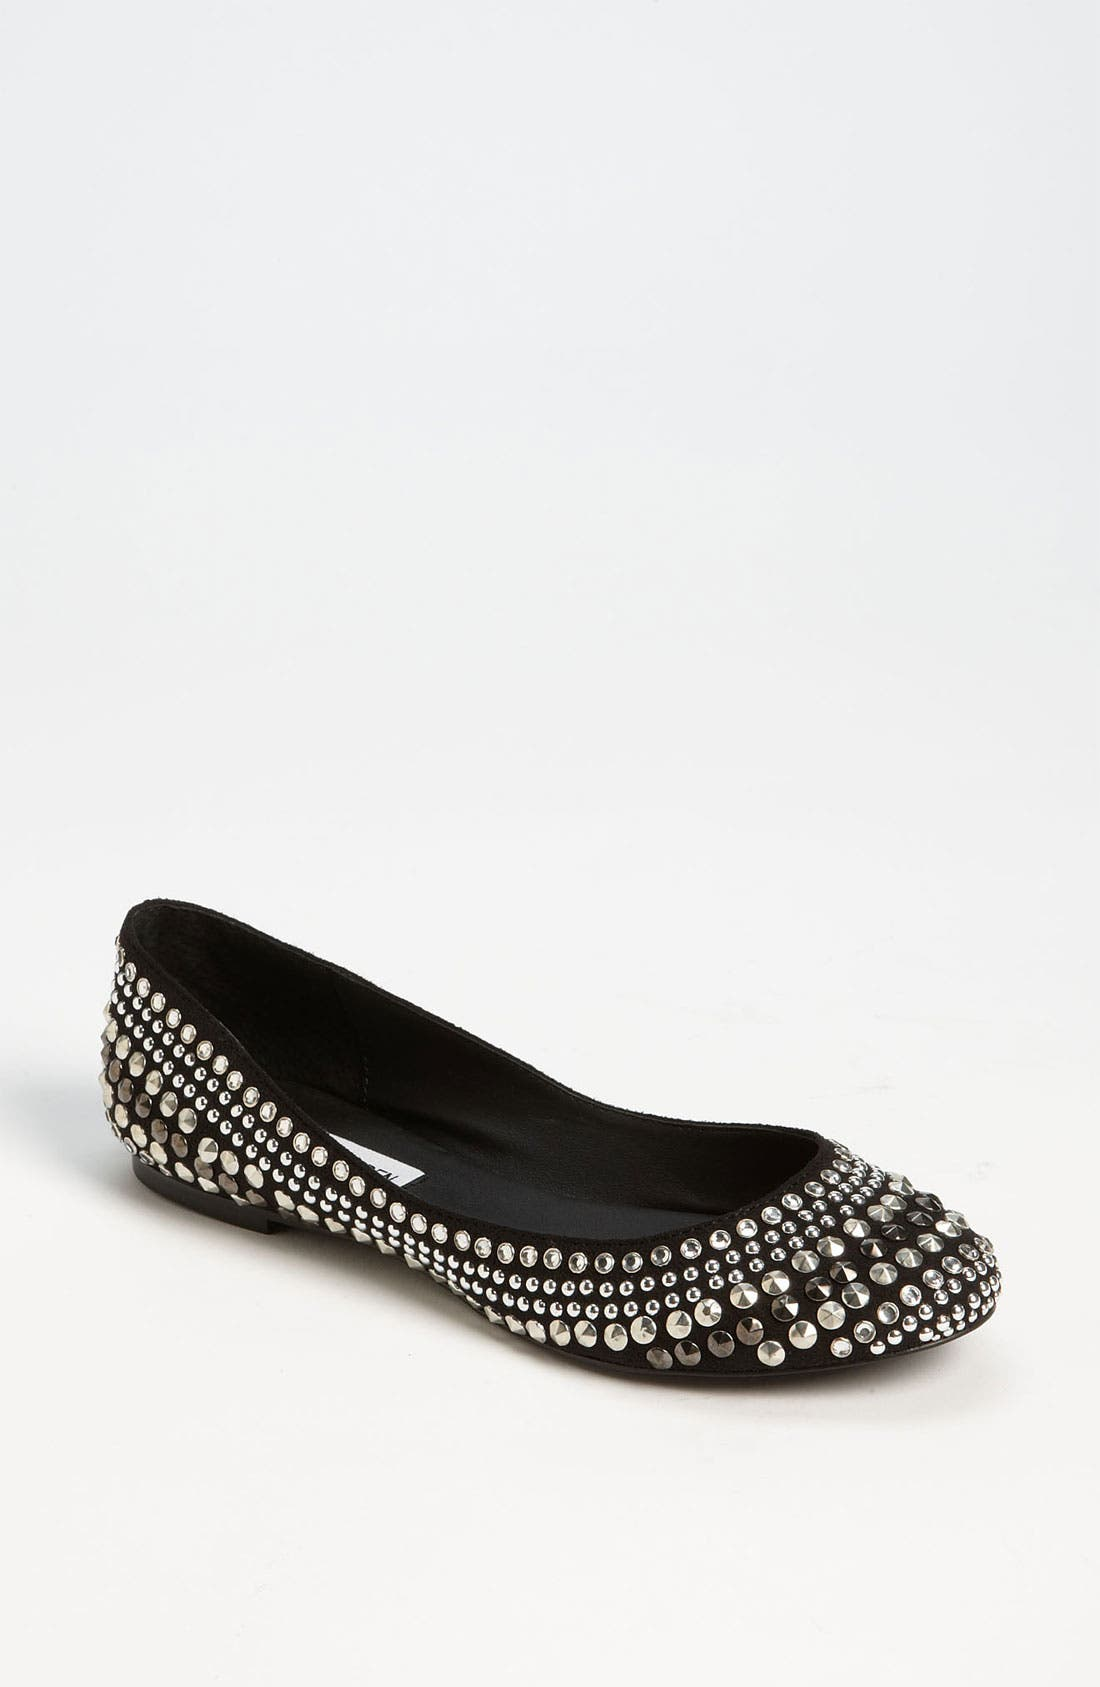 Alternate Image 1 Selected - Steve Madden 'Kuddos' Flat